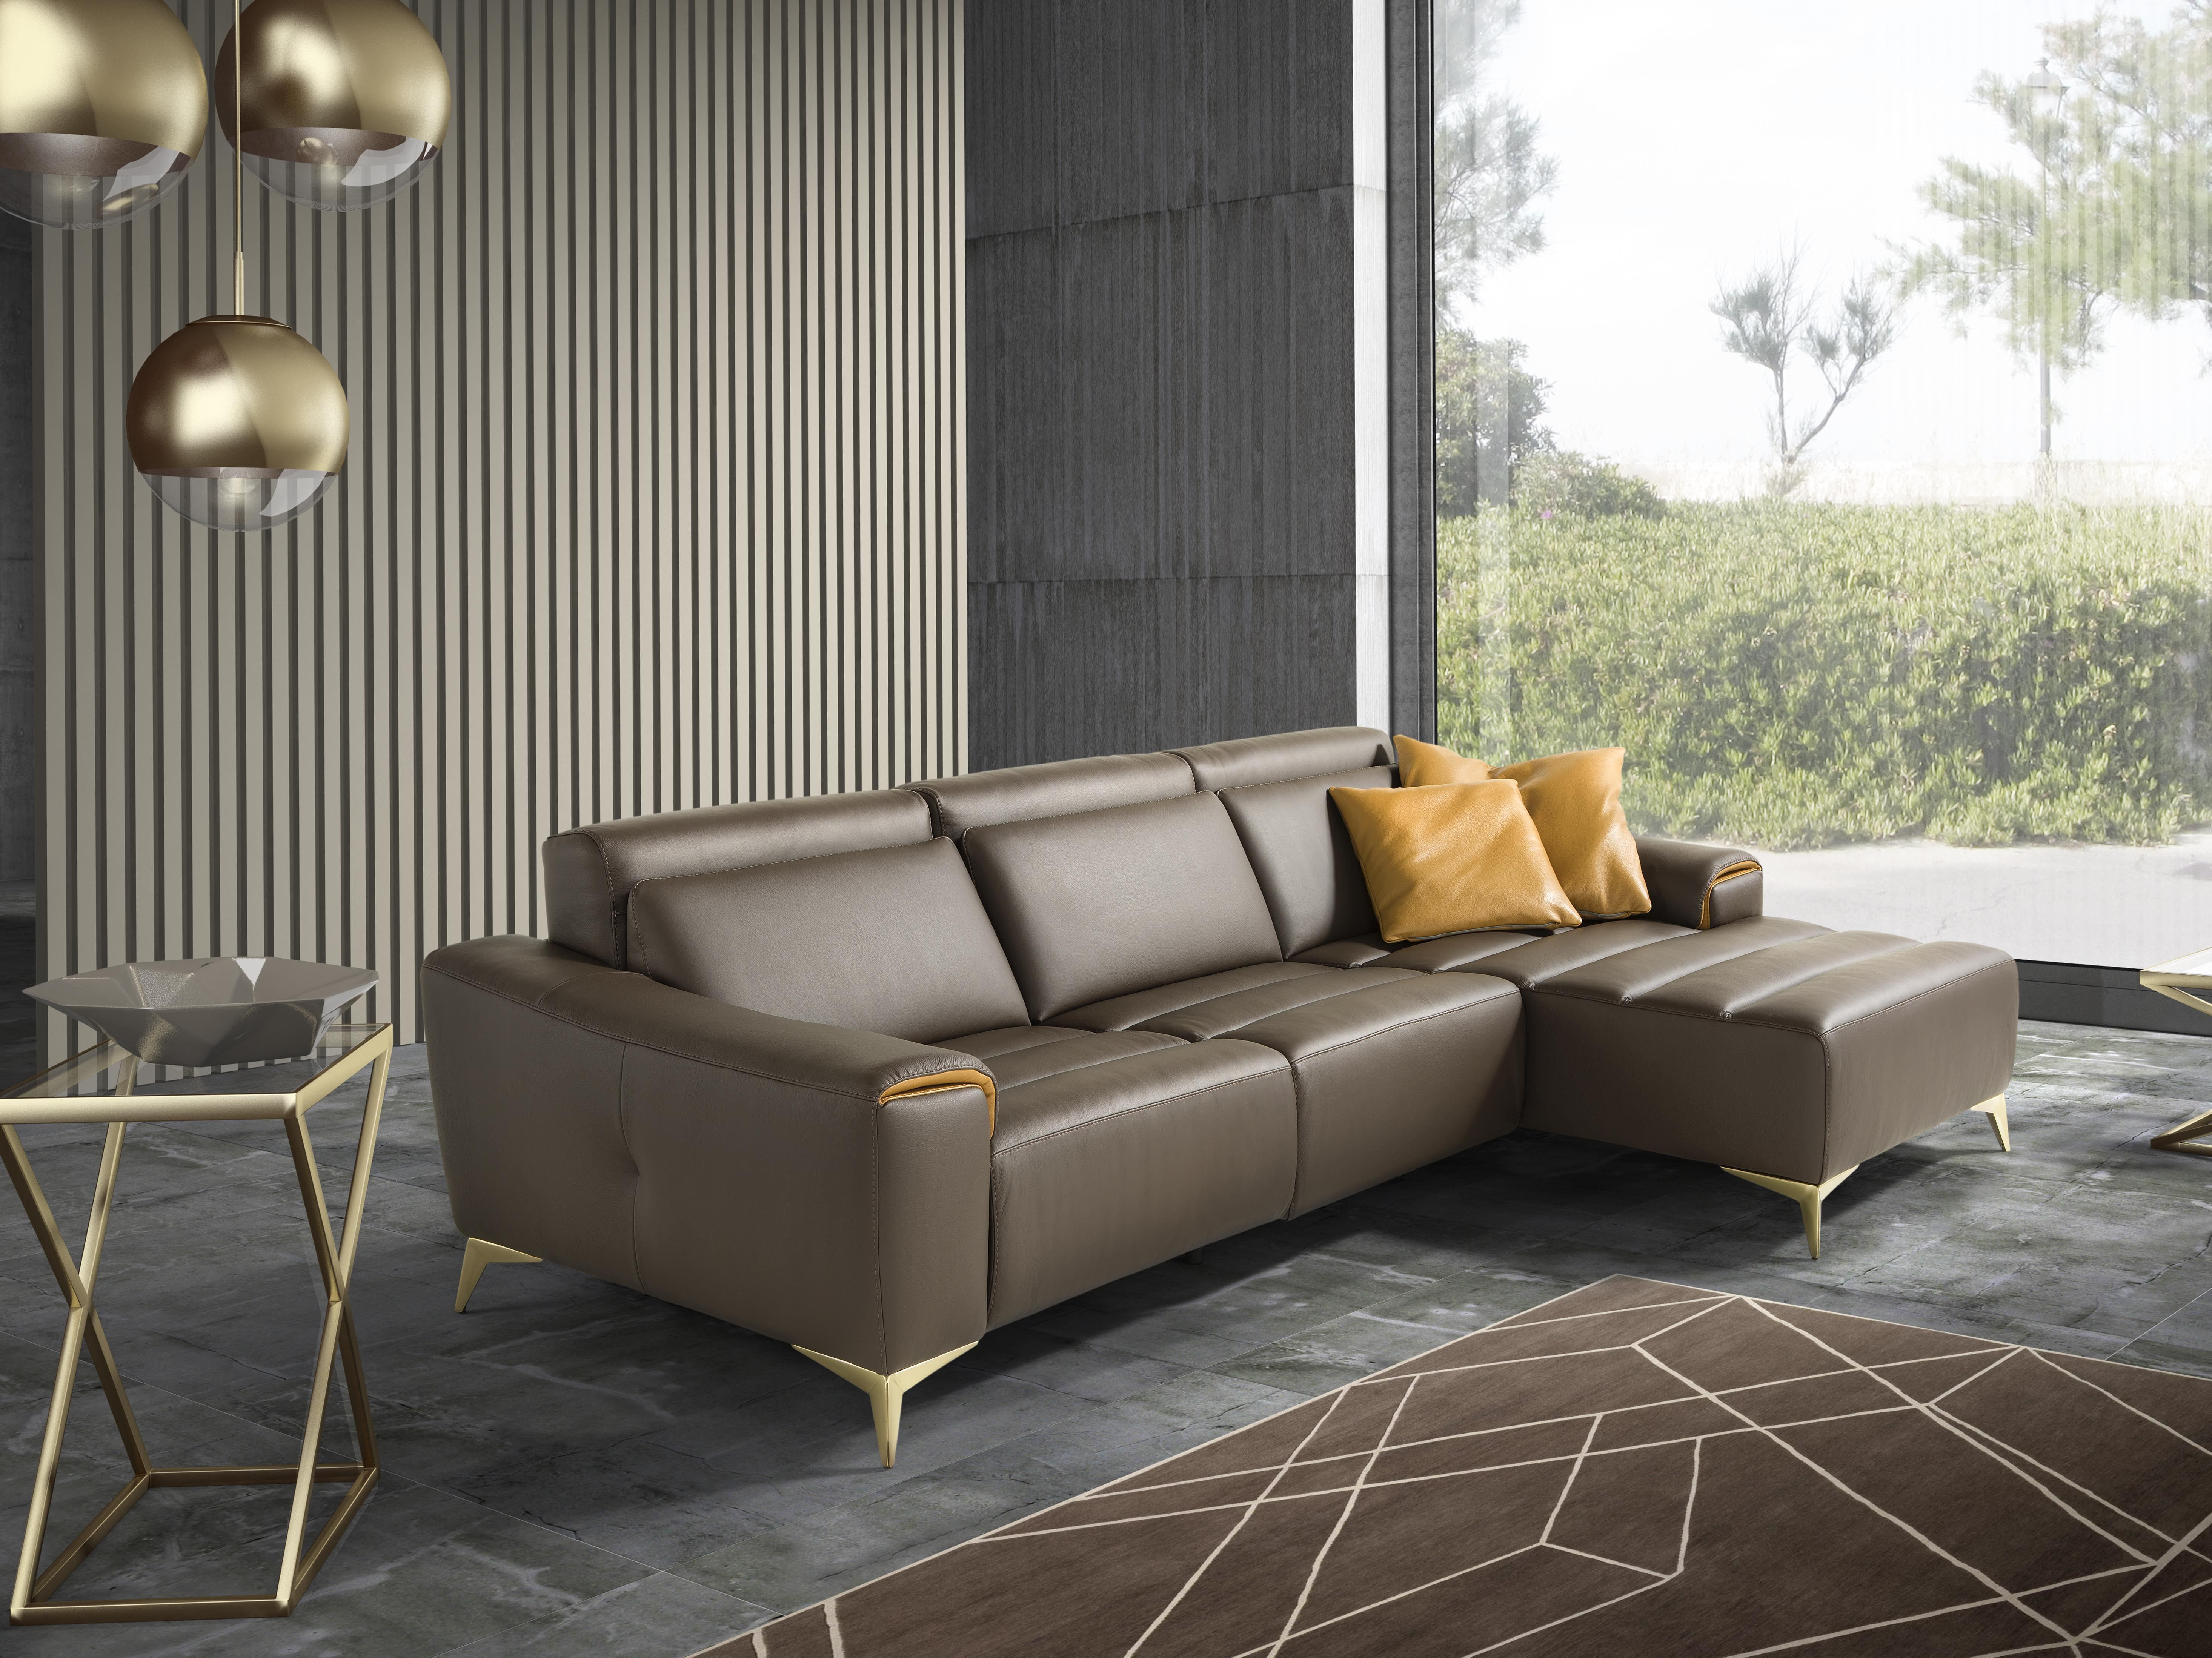 Sectional sofa with chaise longue SUZETTE by Egoitaliano